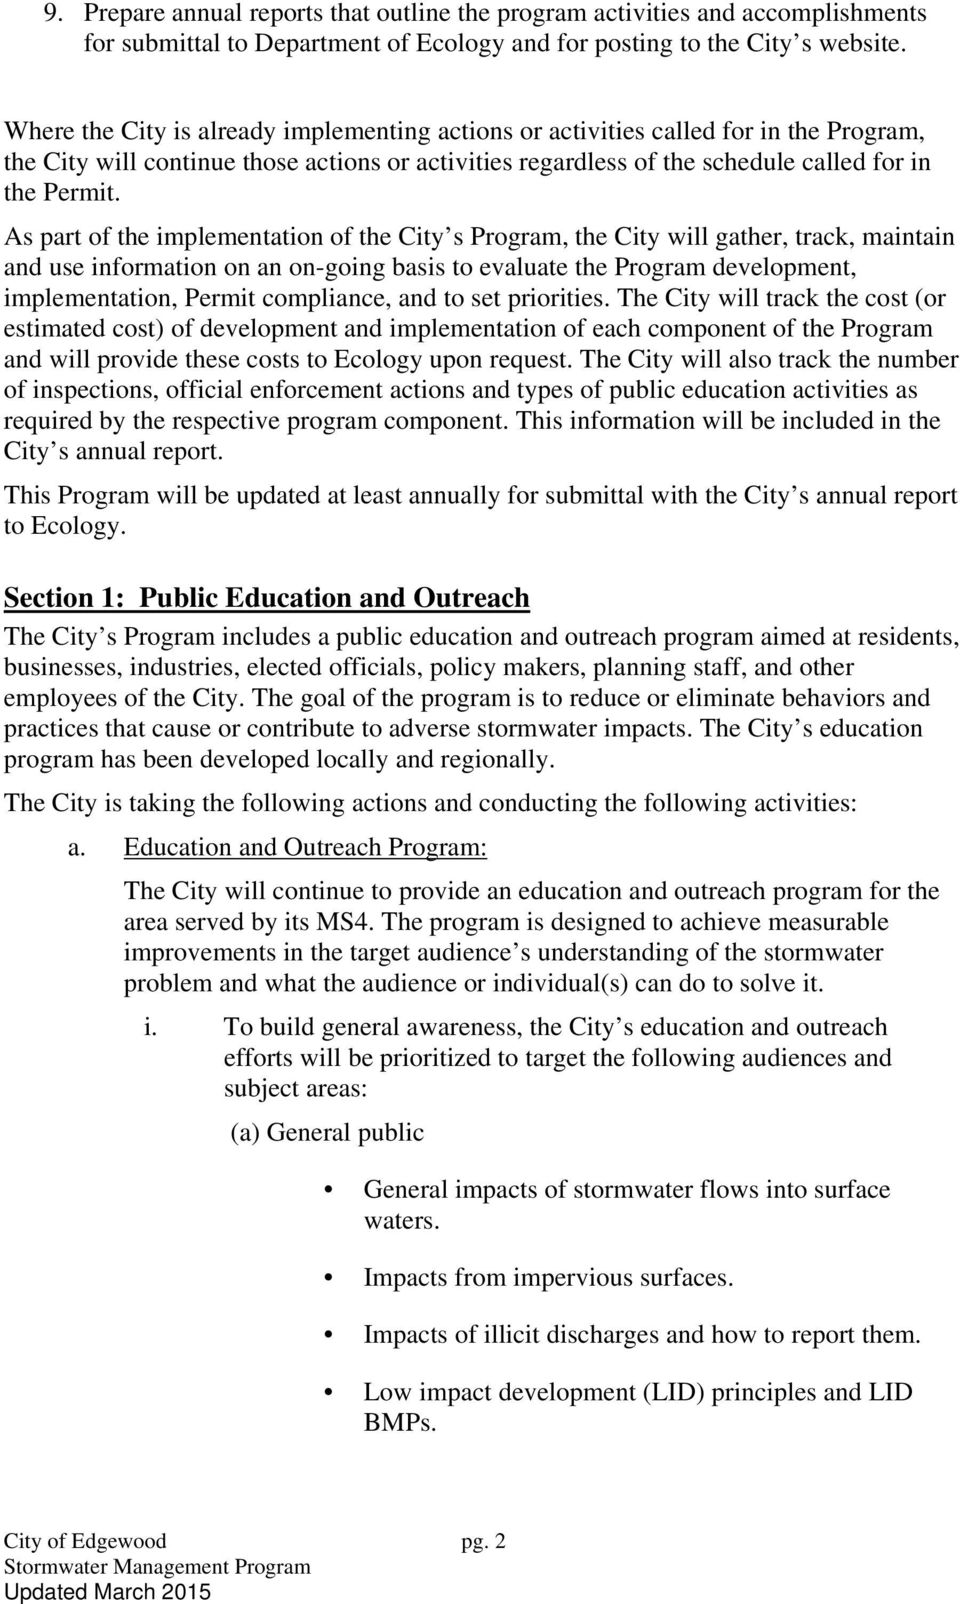 As part of the implementation of the City s Program, the City will gather, track, maintain and use information on an on-going basis to evaluate the Program development, implementation, Permit